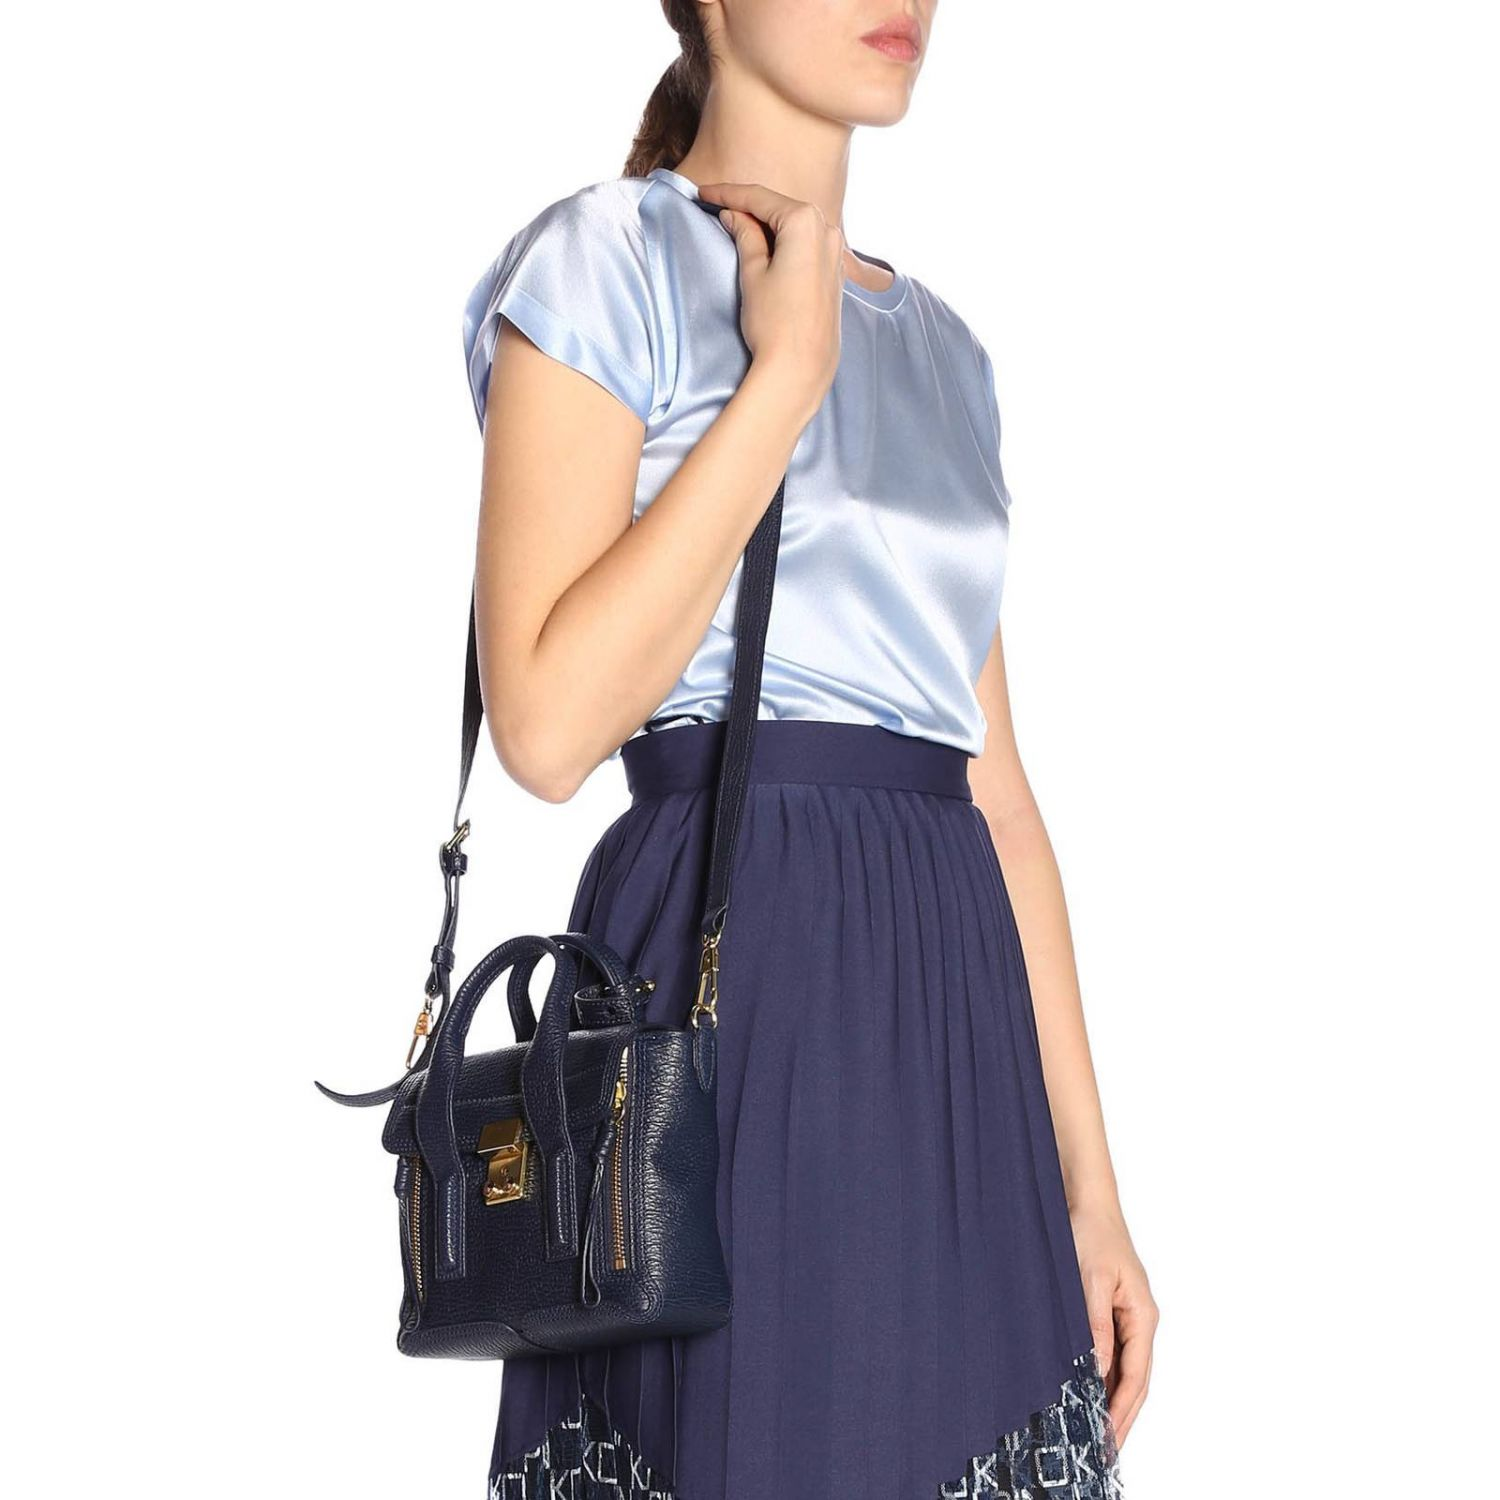 Shoulder bag women 3.1 Phillip Lim blue 2